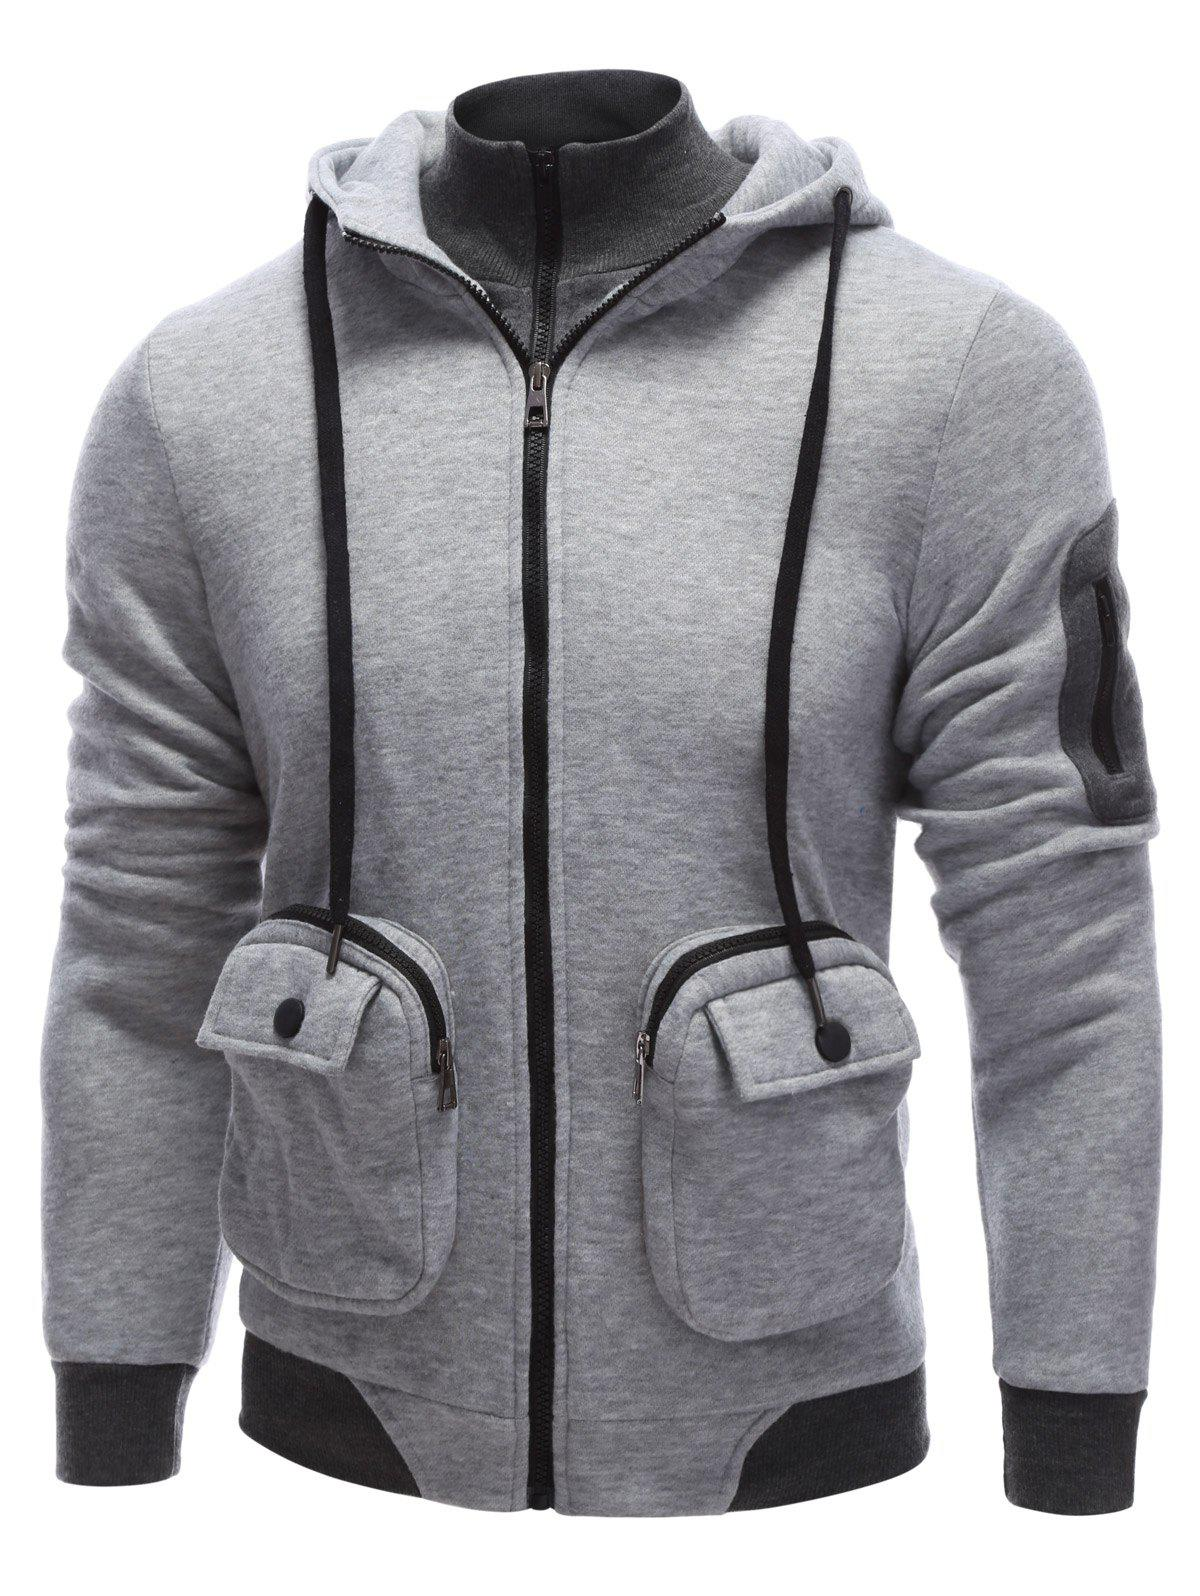 Zip Drawstring Sweatshirt à capuche Pocket - Gris S